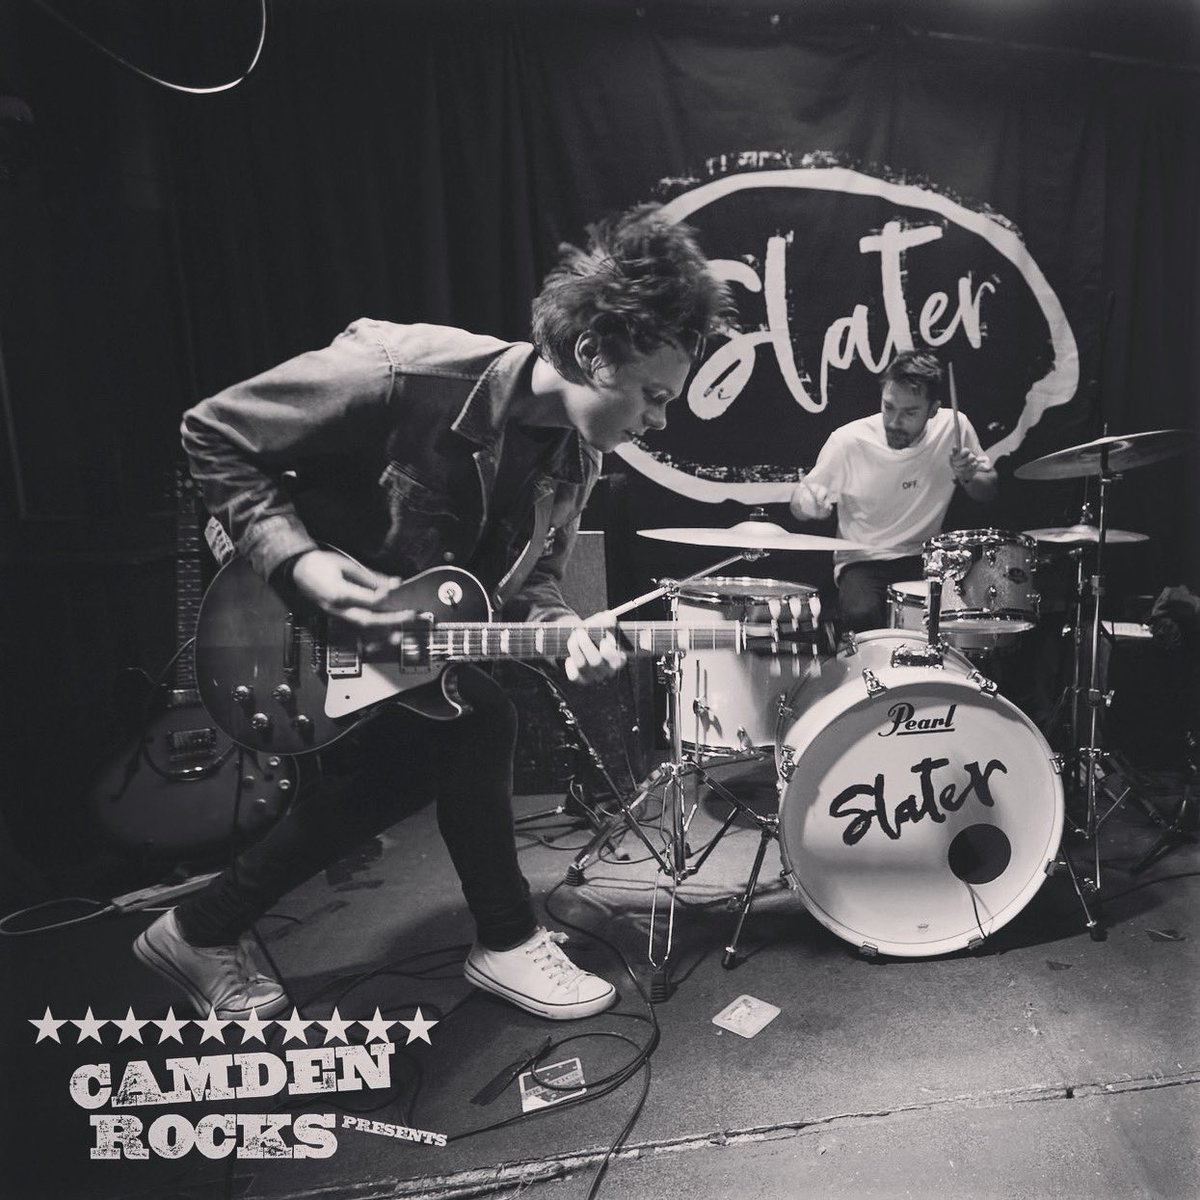 What's happening? Giving it all we got is happening! #camdenrocks #london